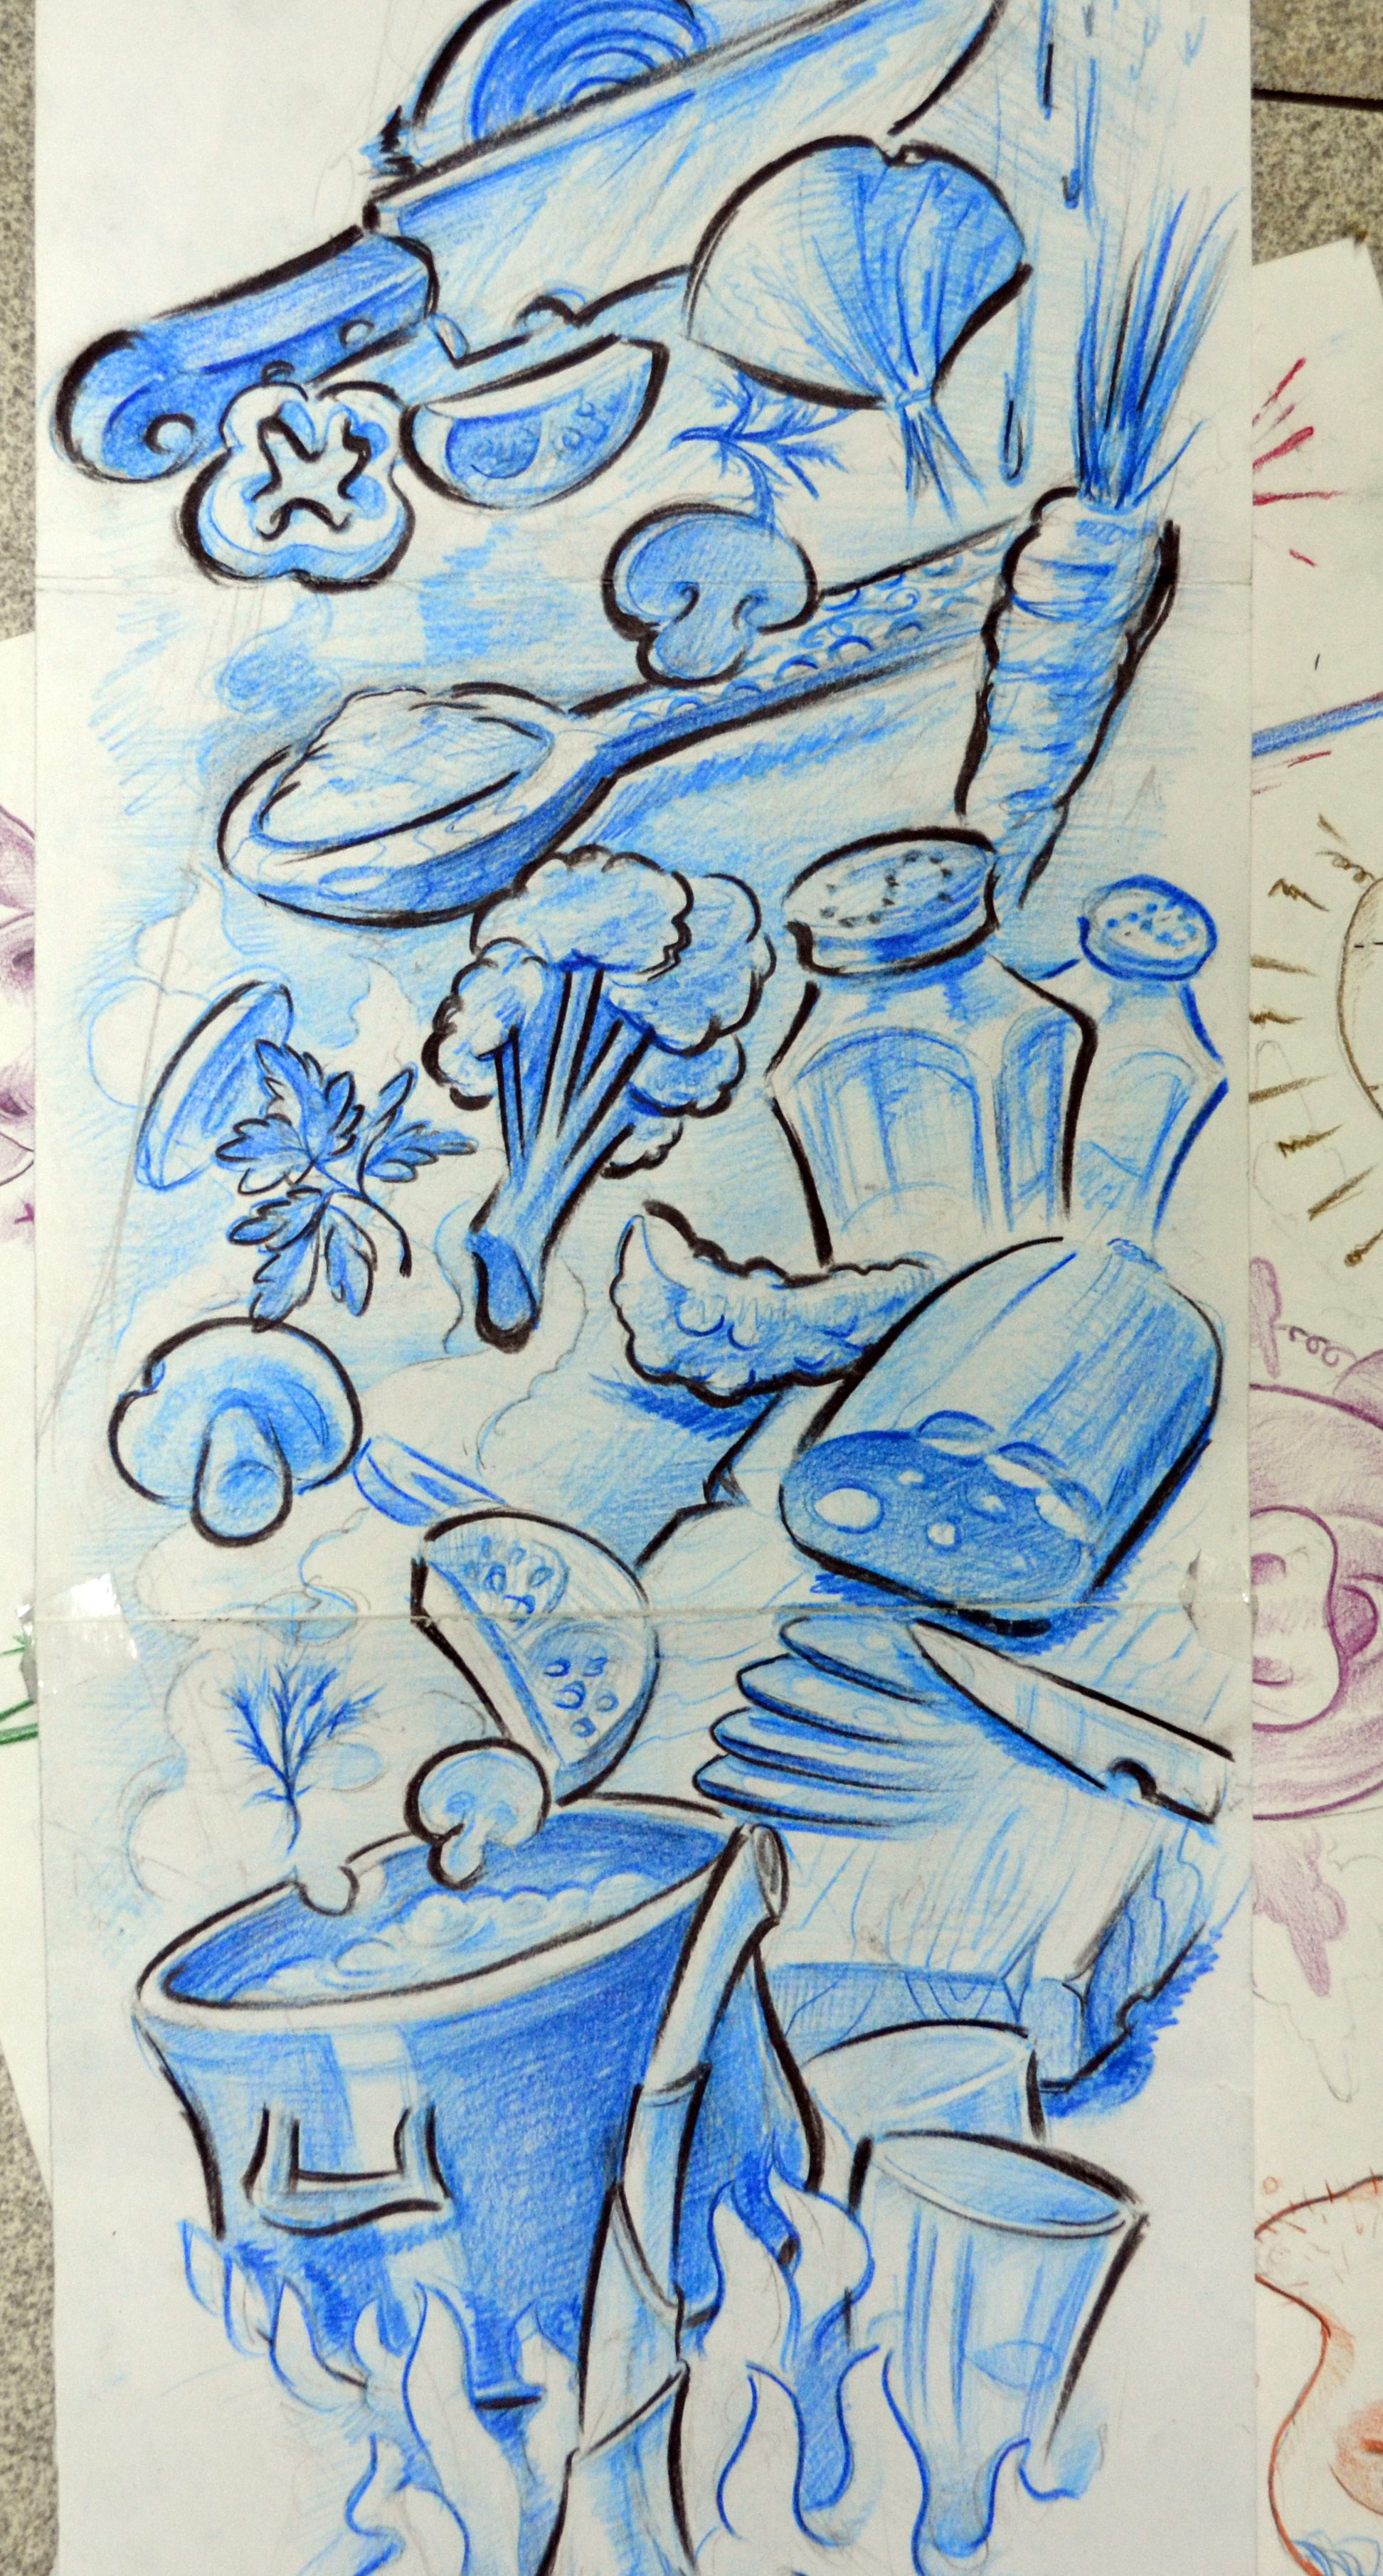 cooking tattoo design for a chef\'s sleeve | Inkspiration | Pinterest ...